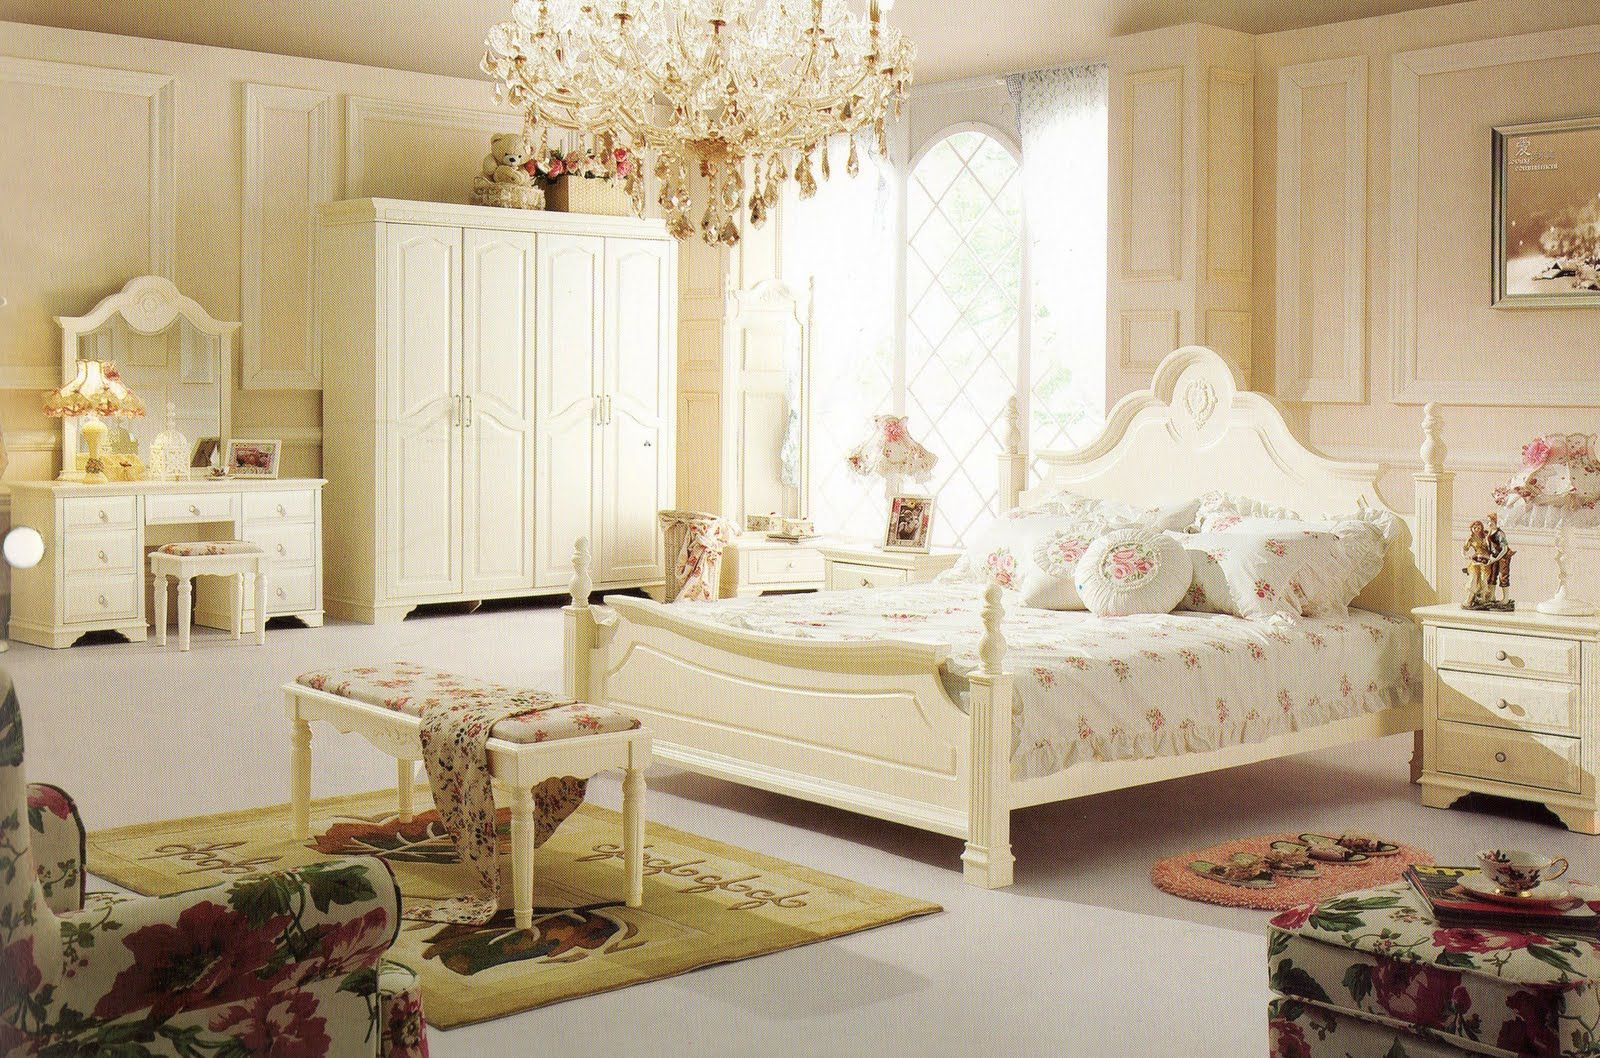 New Arrival Of Our Beautiful And Elegant French Style French Bedroom Decorfrench